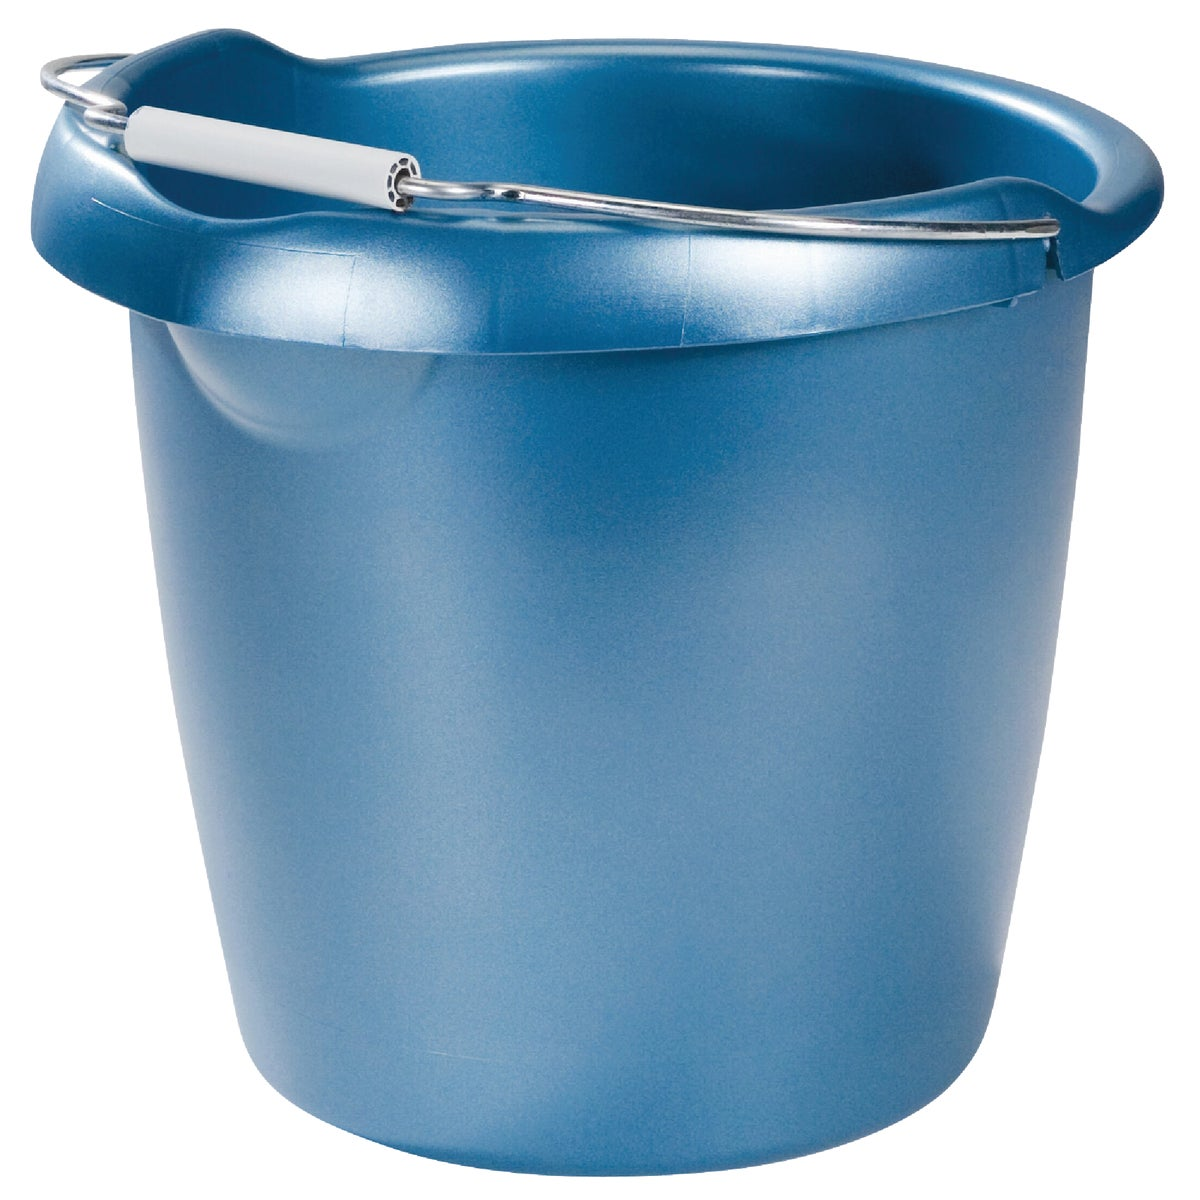 15QT BLUE BUCKET - FG296900ROYBL by Rubbermaid Home